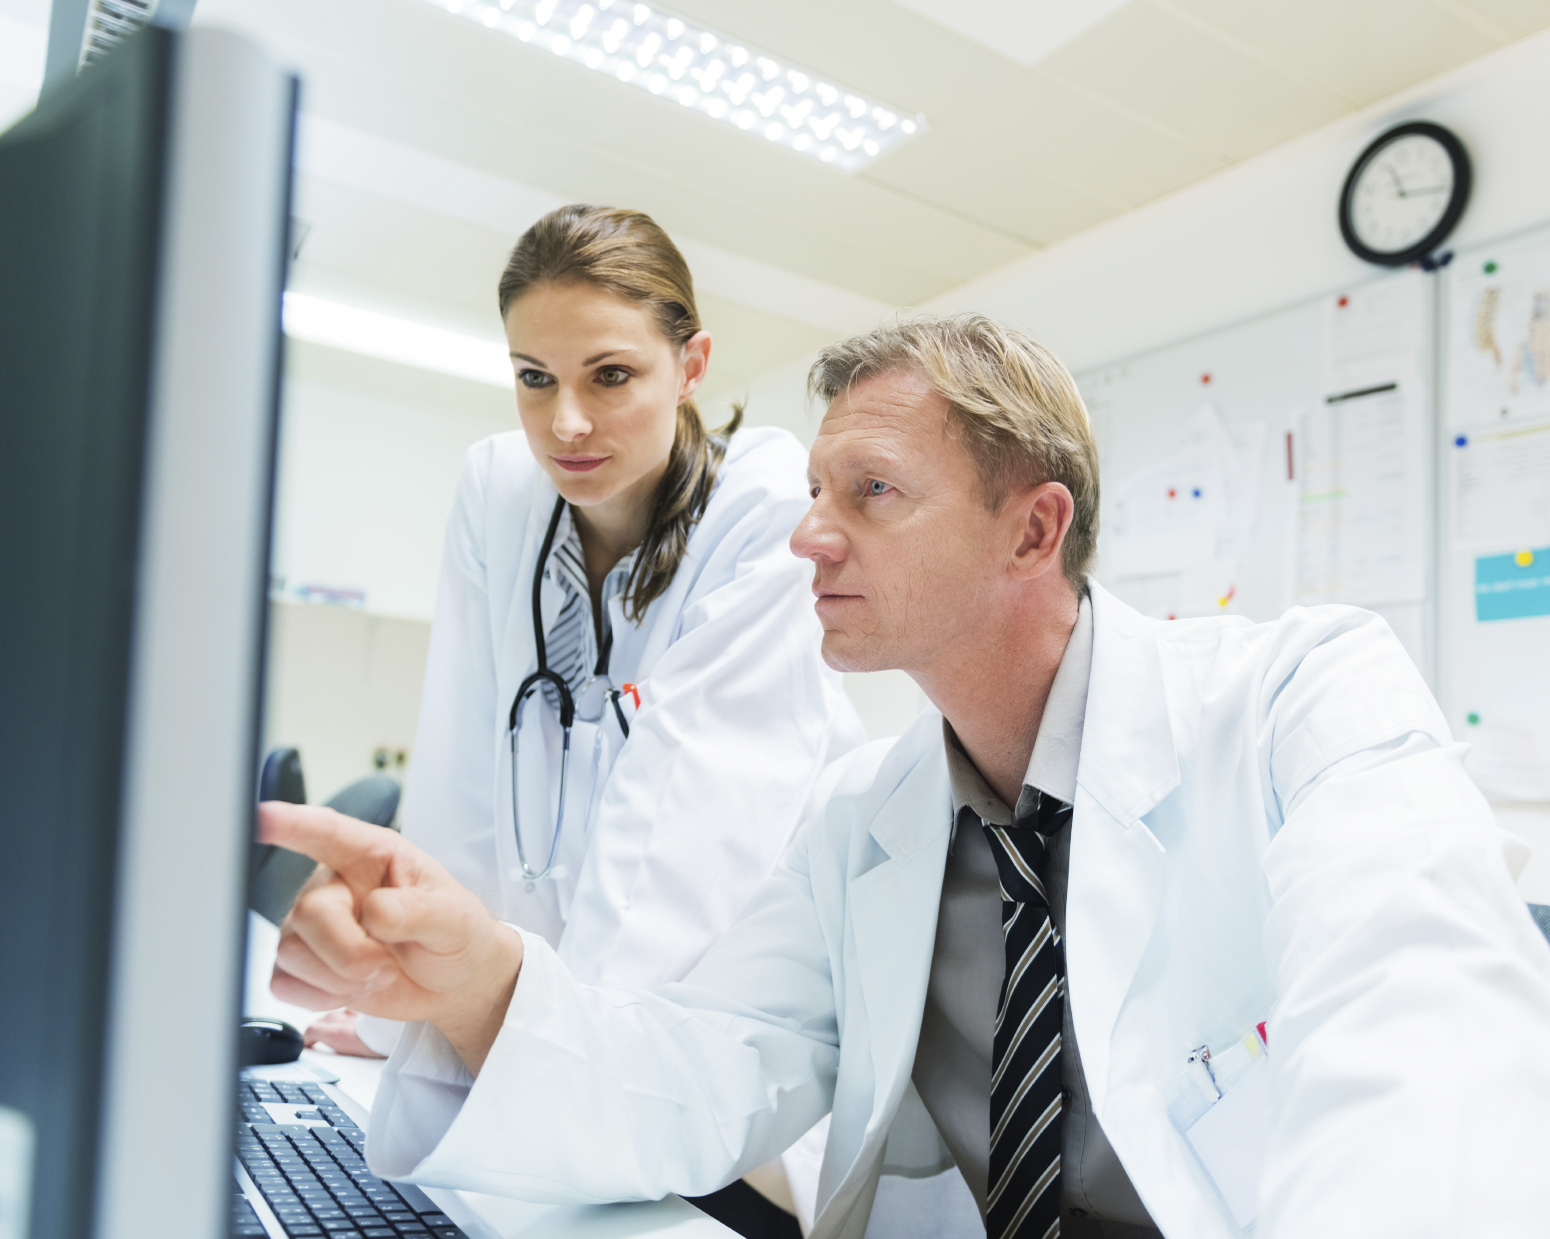 Optimize Your Clinical Workflow in 4 Steps